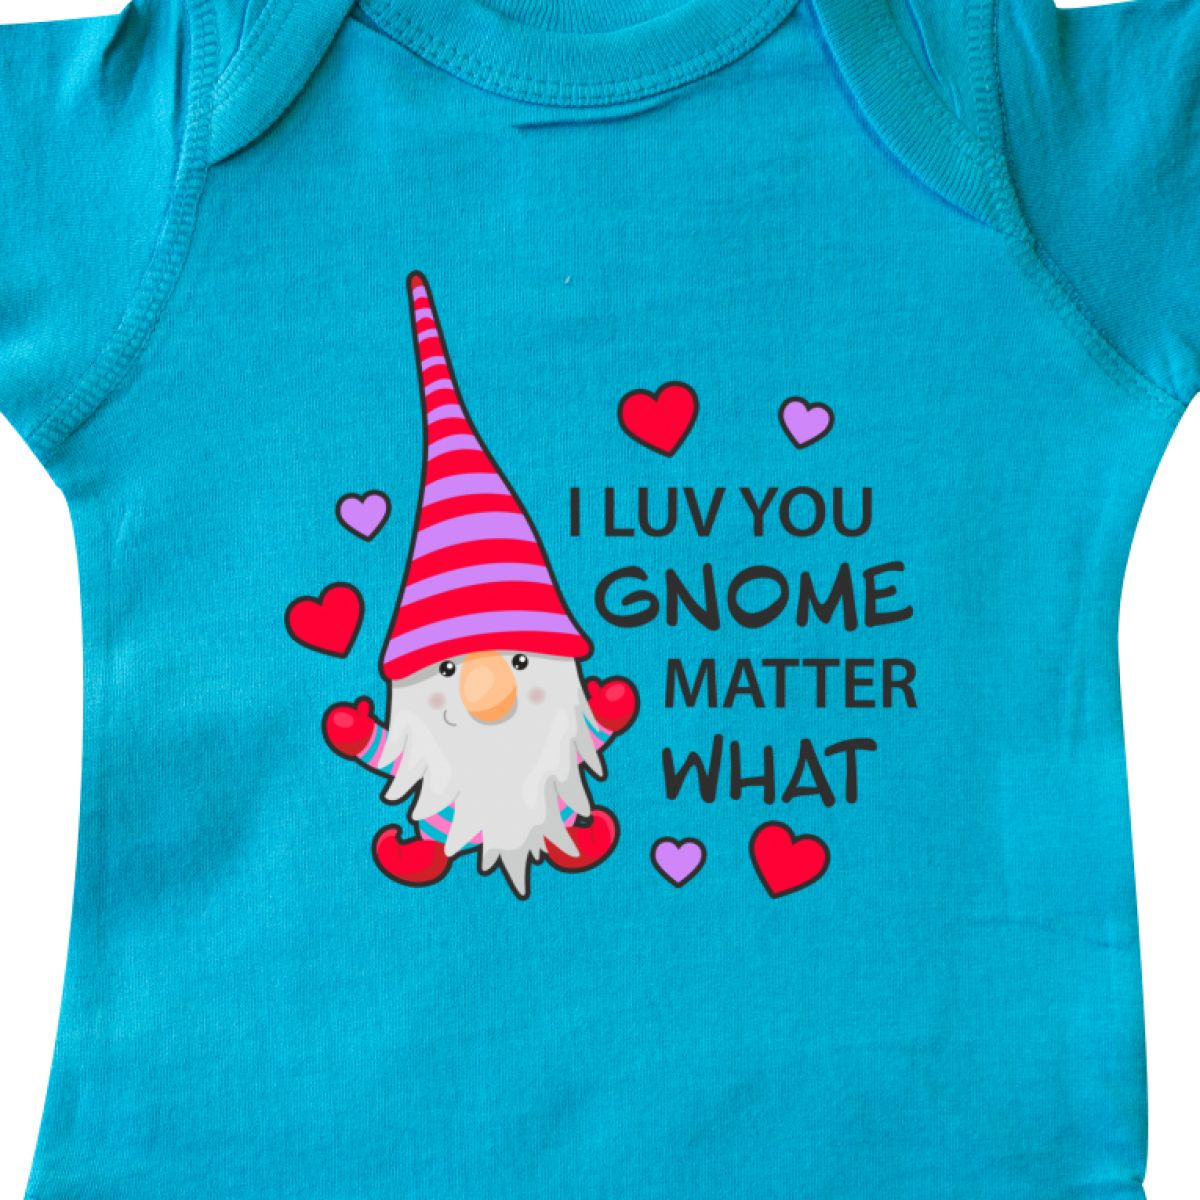 Inktastic-I-Luv-You-Gnome-Matter-What-With-Gnome-And-Hearts-Infant-Creeper-Love 縮圖 26